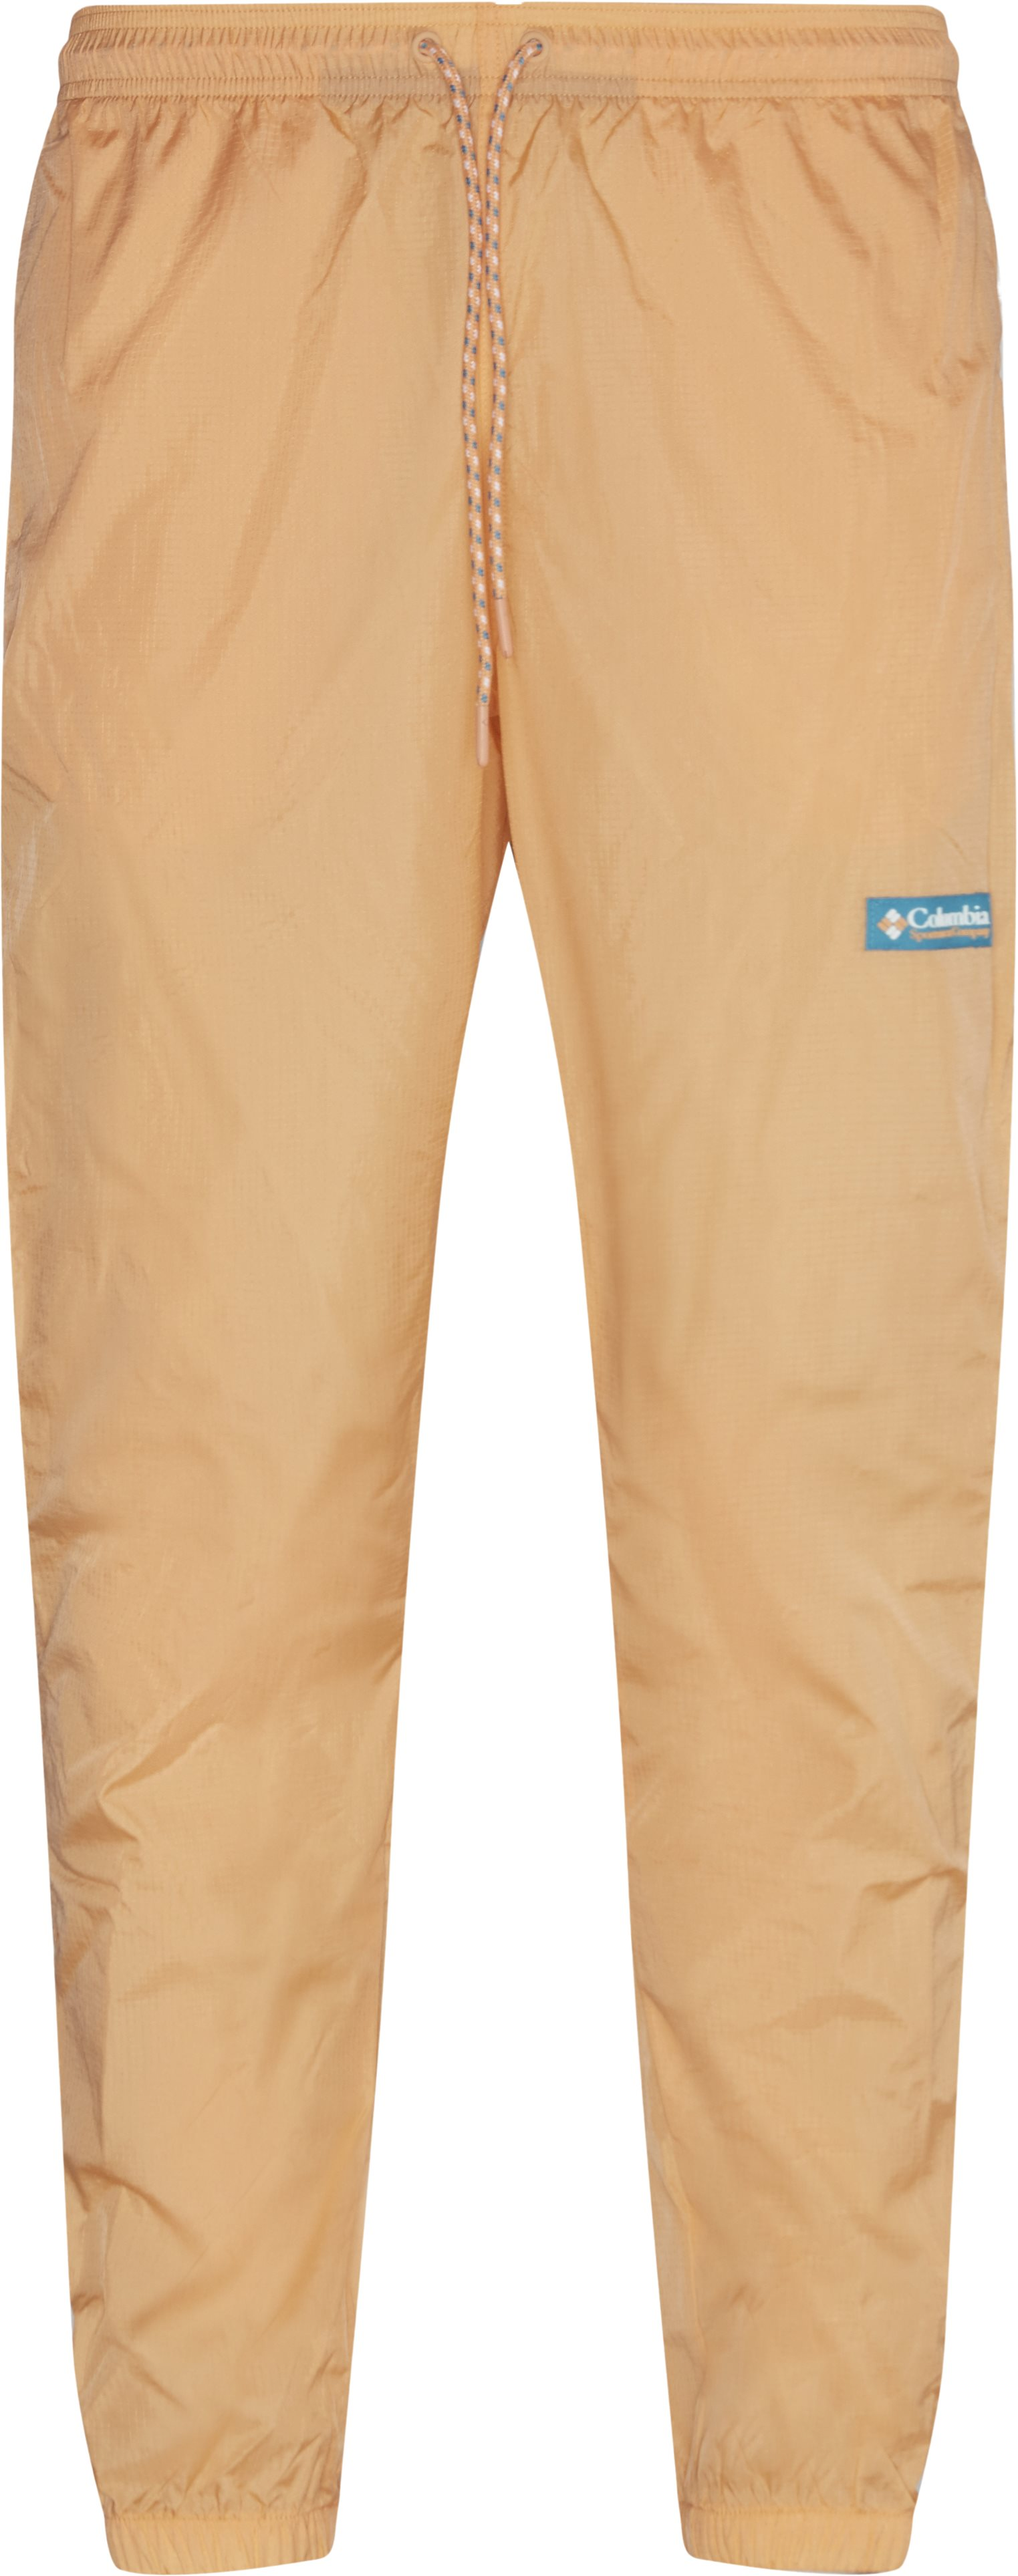 Santa Ana Pant - Bukser - Orange